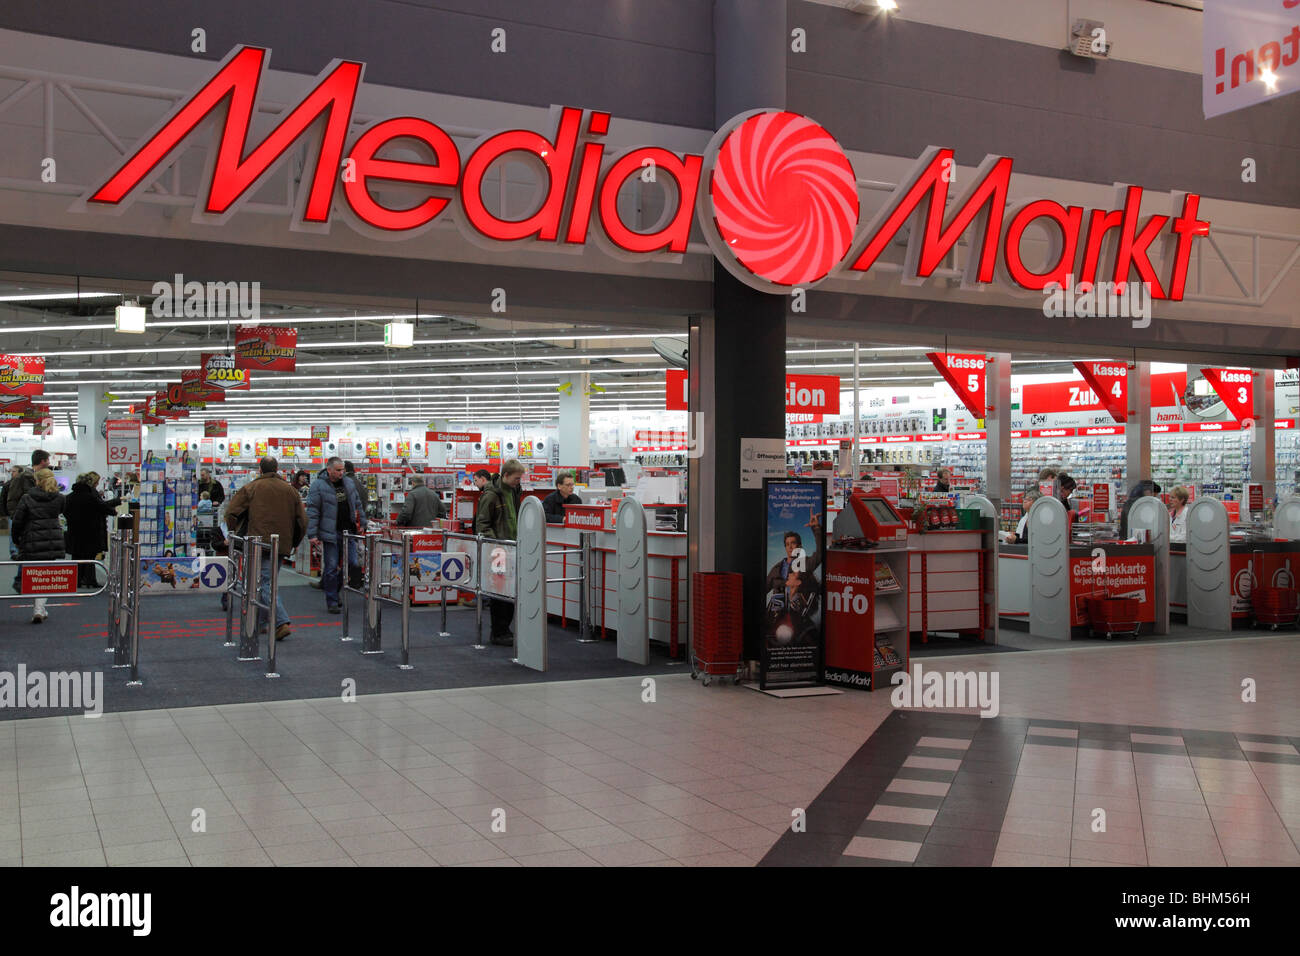 Media Markt in Halle Peißen, Germany Stock Photo, Royalty   -> Kuchnia Elektryczna Media Markt